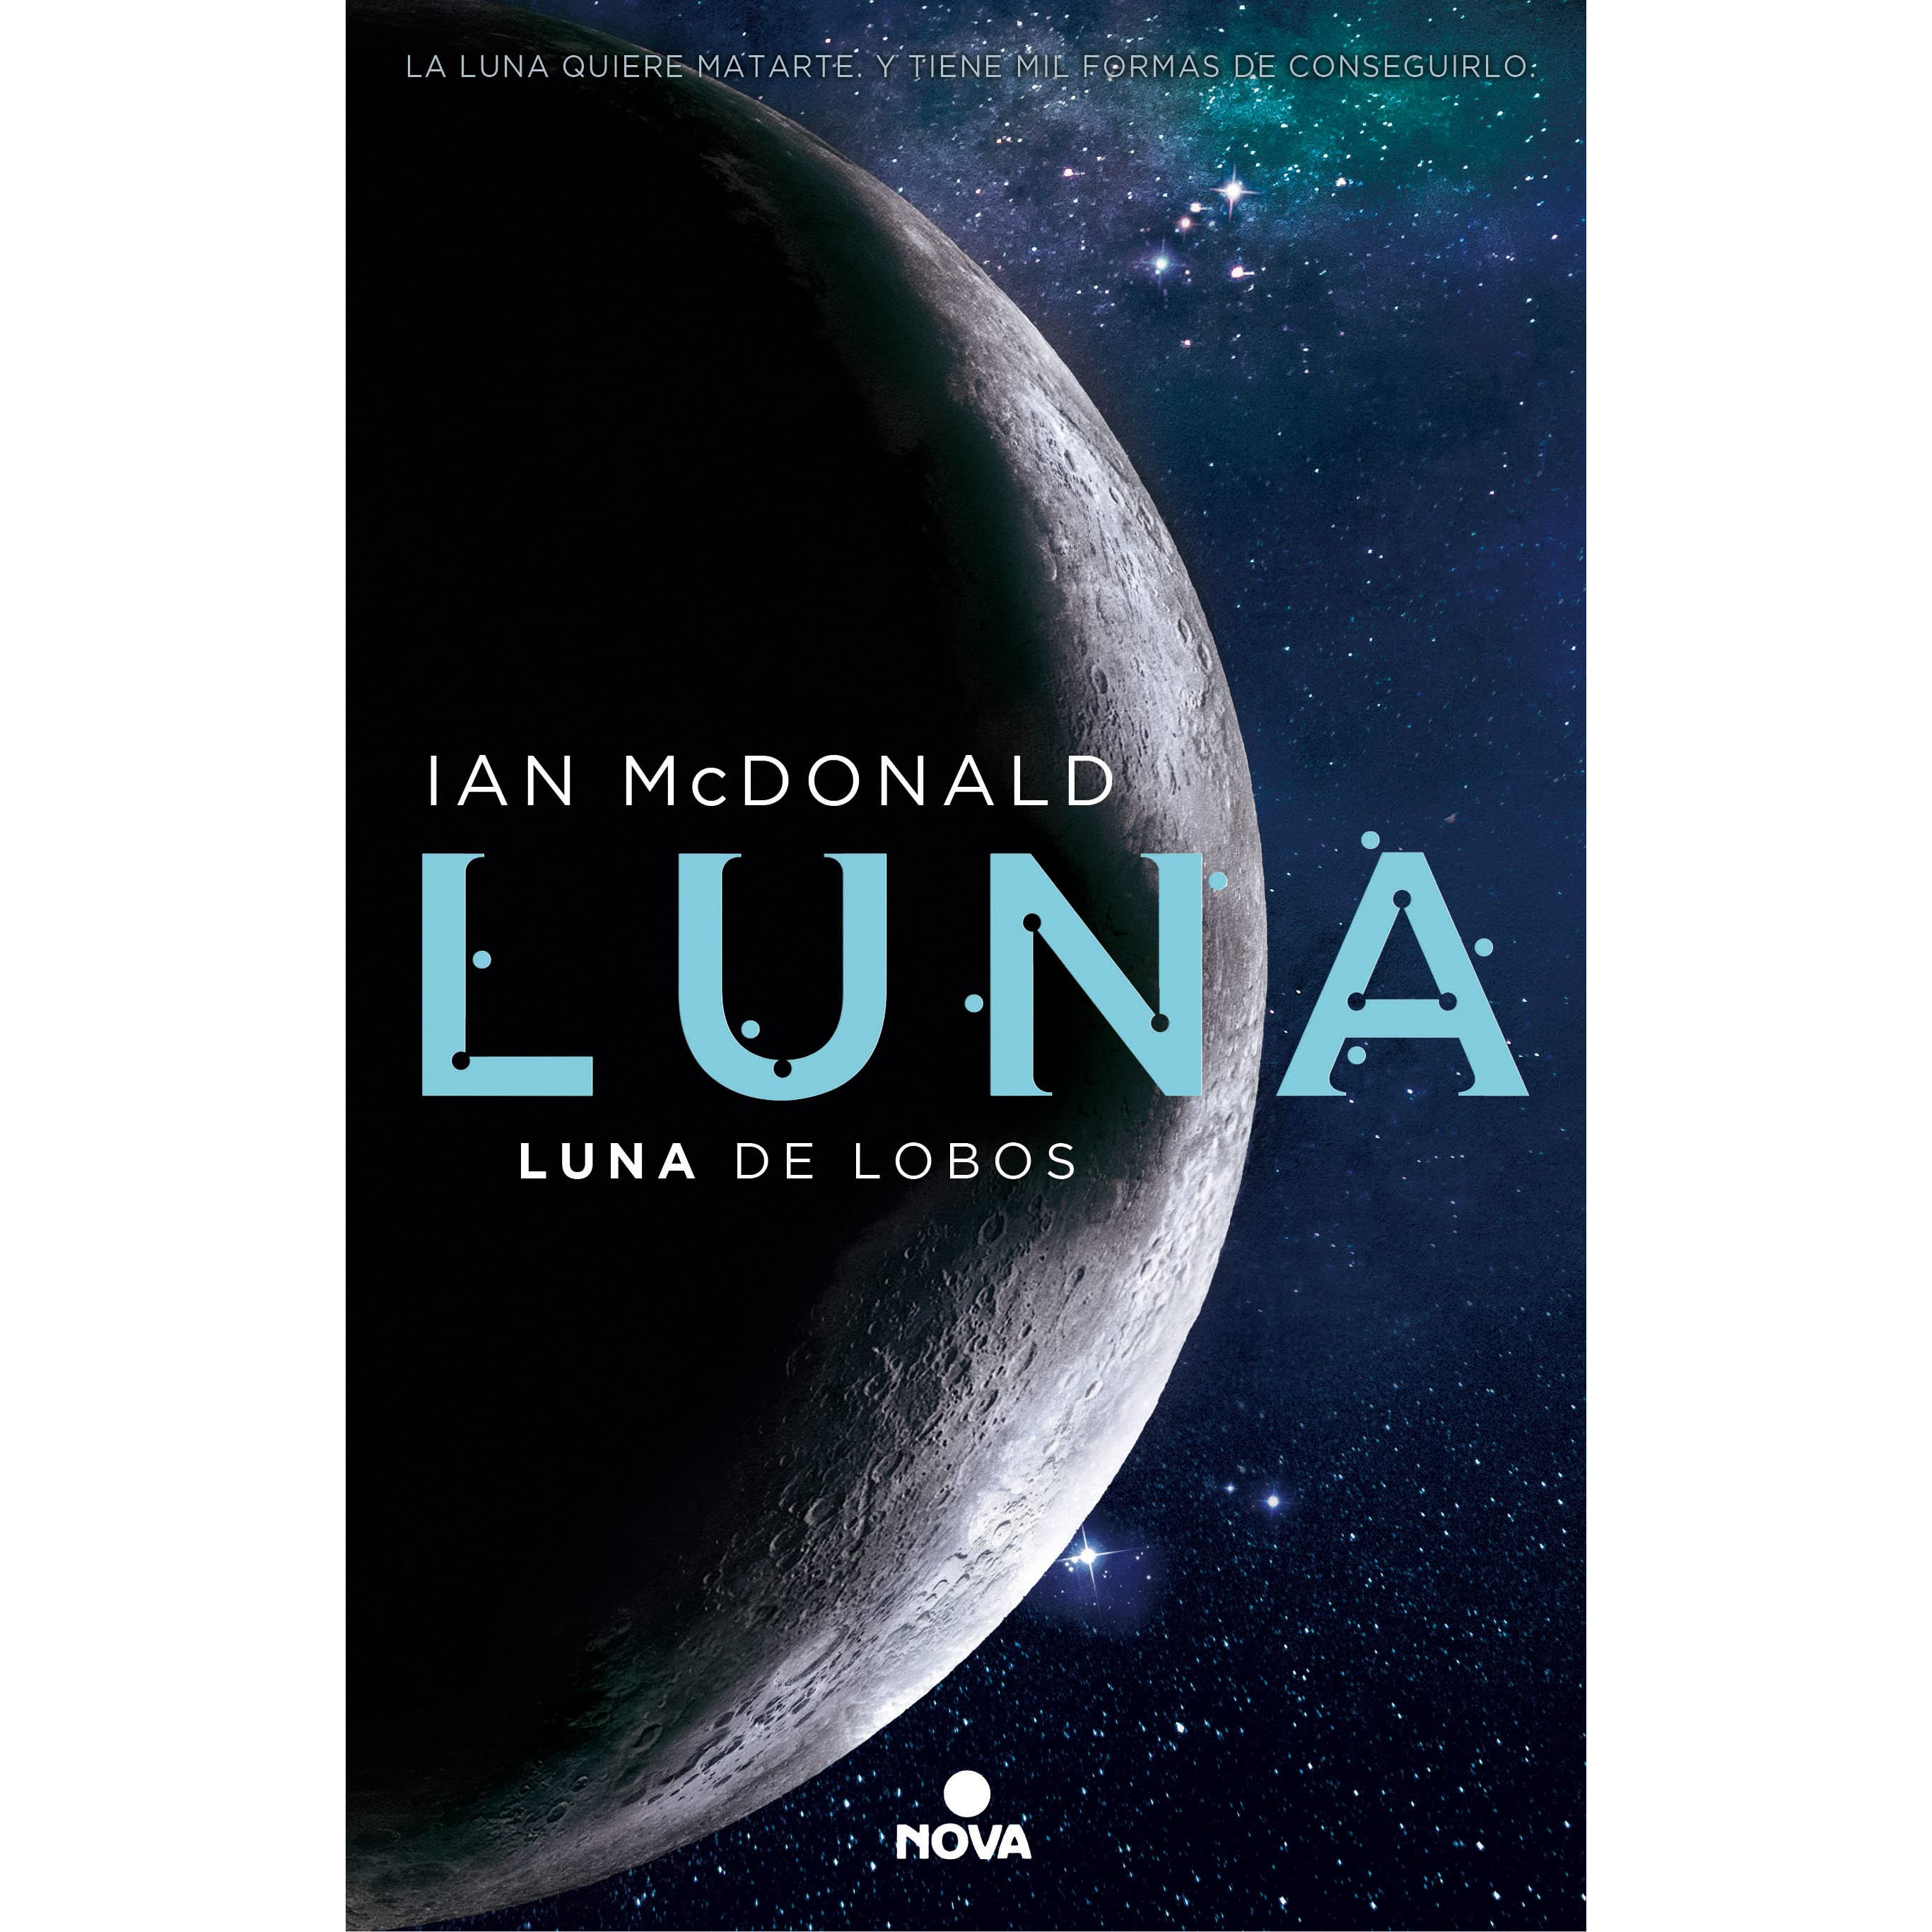 luna book review When i first saw this book, i wasn't really sure what to expect of it, luna by julie anne peters i thought totally negative about this book, i should have known better, because it turns out.